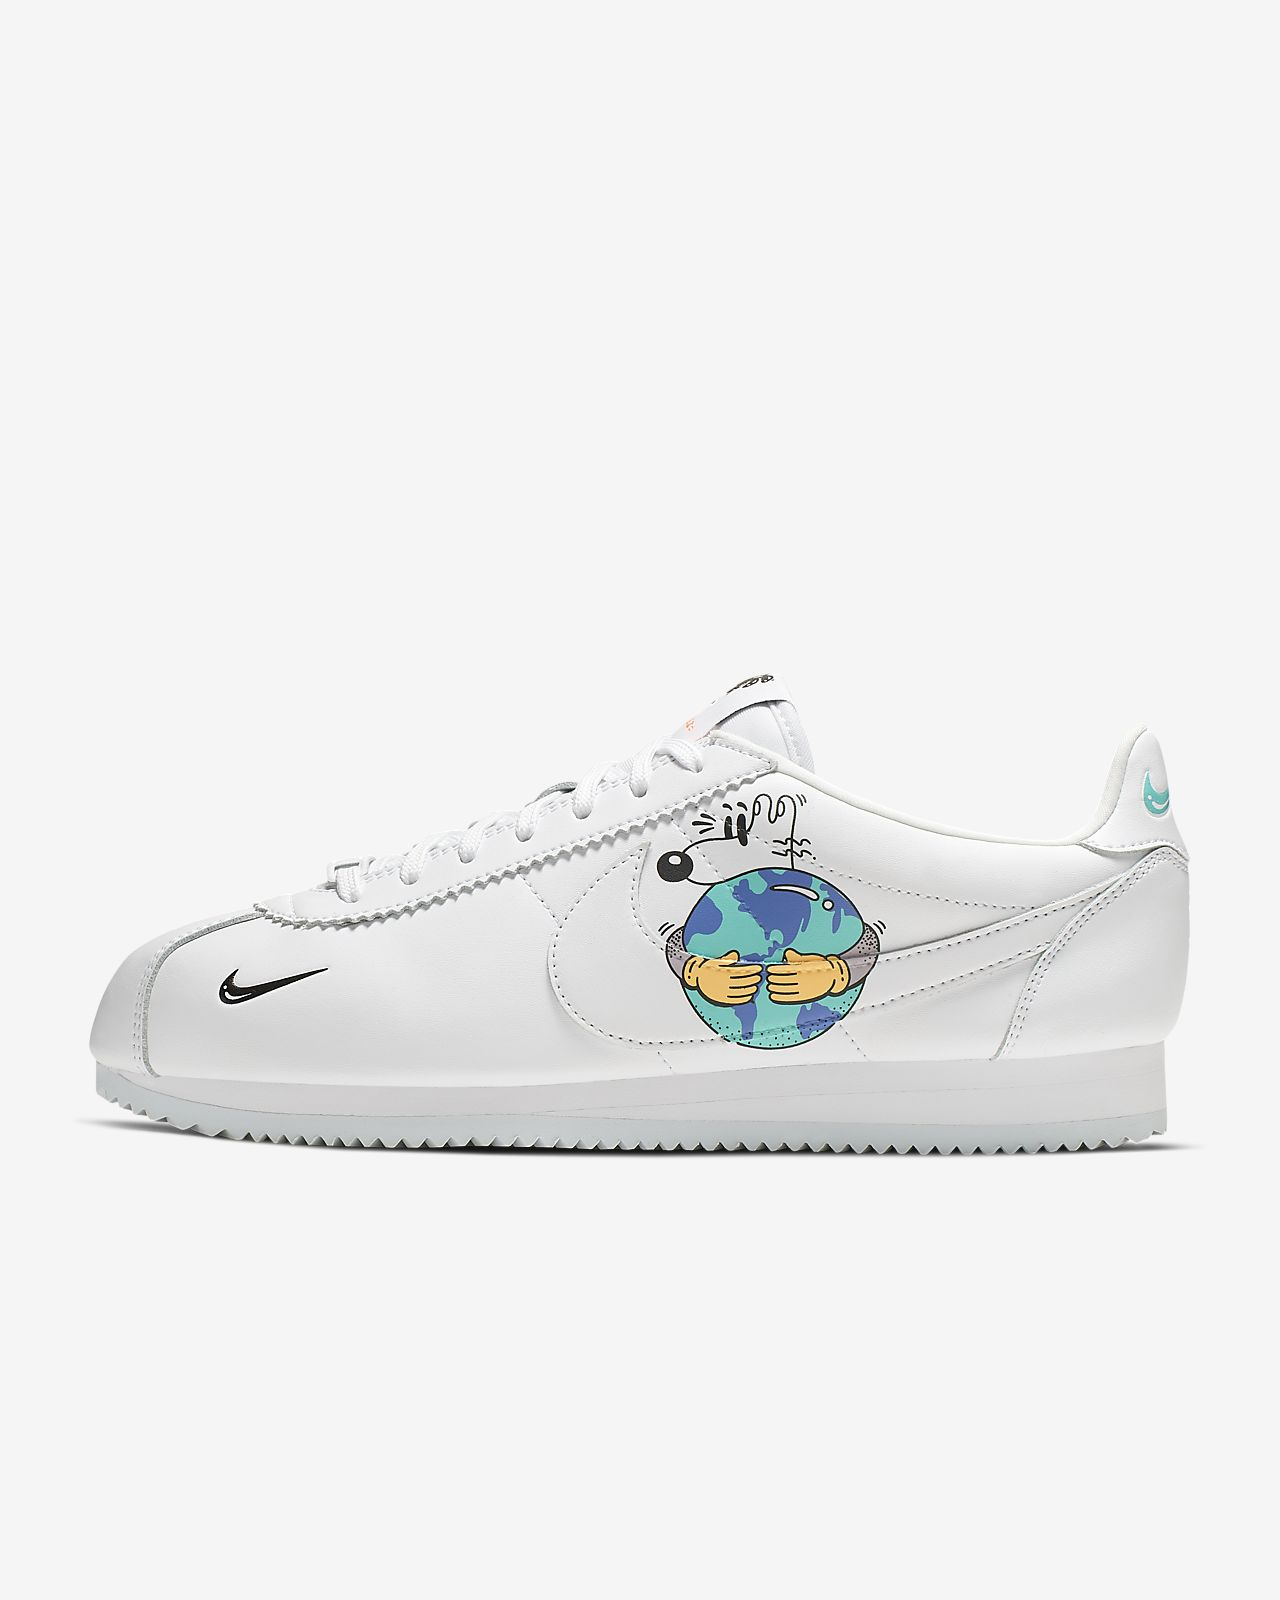 Nike Cortez QS FlyLeather with at least 50% leather fiber Herenschoen